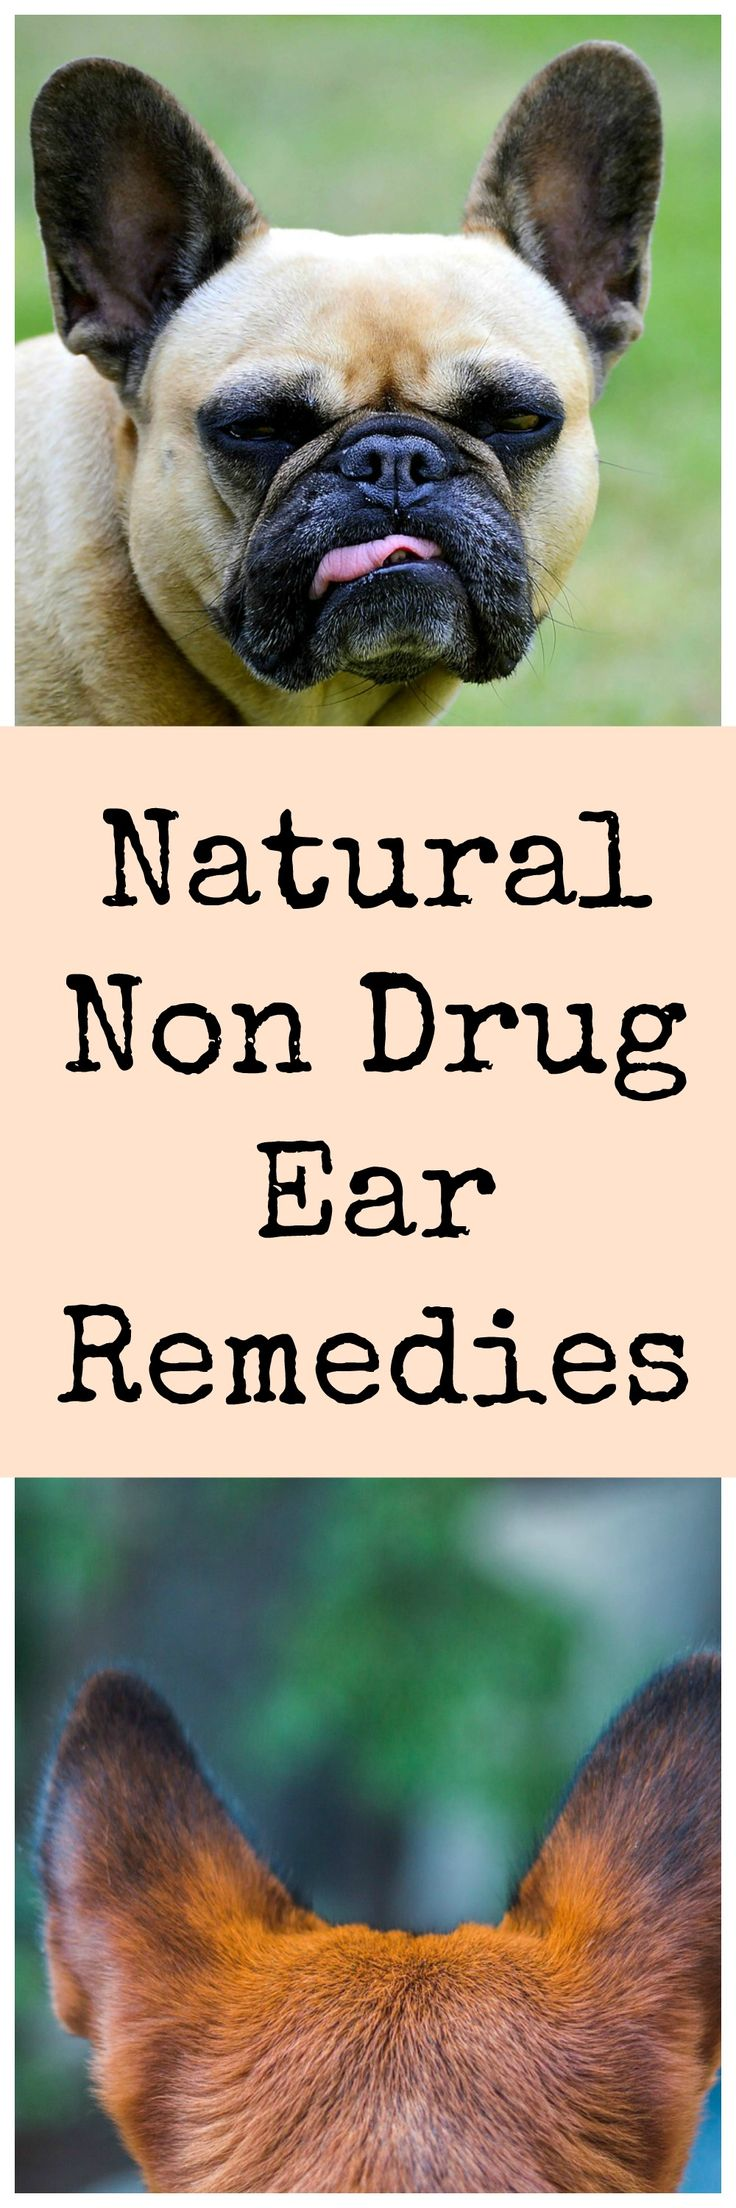 Natural remedies for ear itching and redness in dogs.